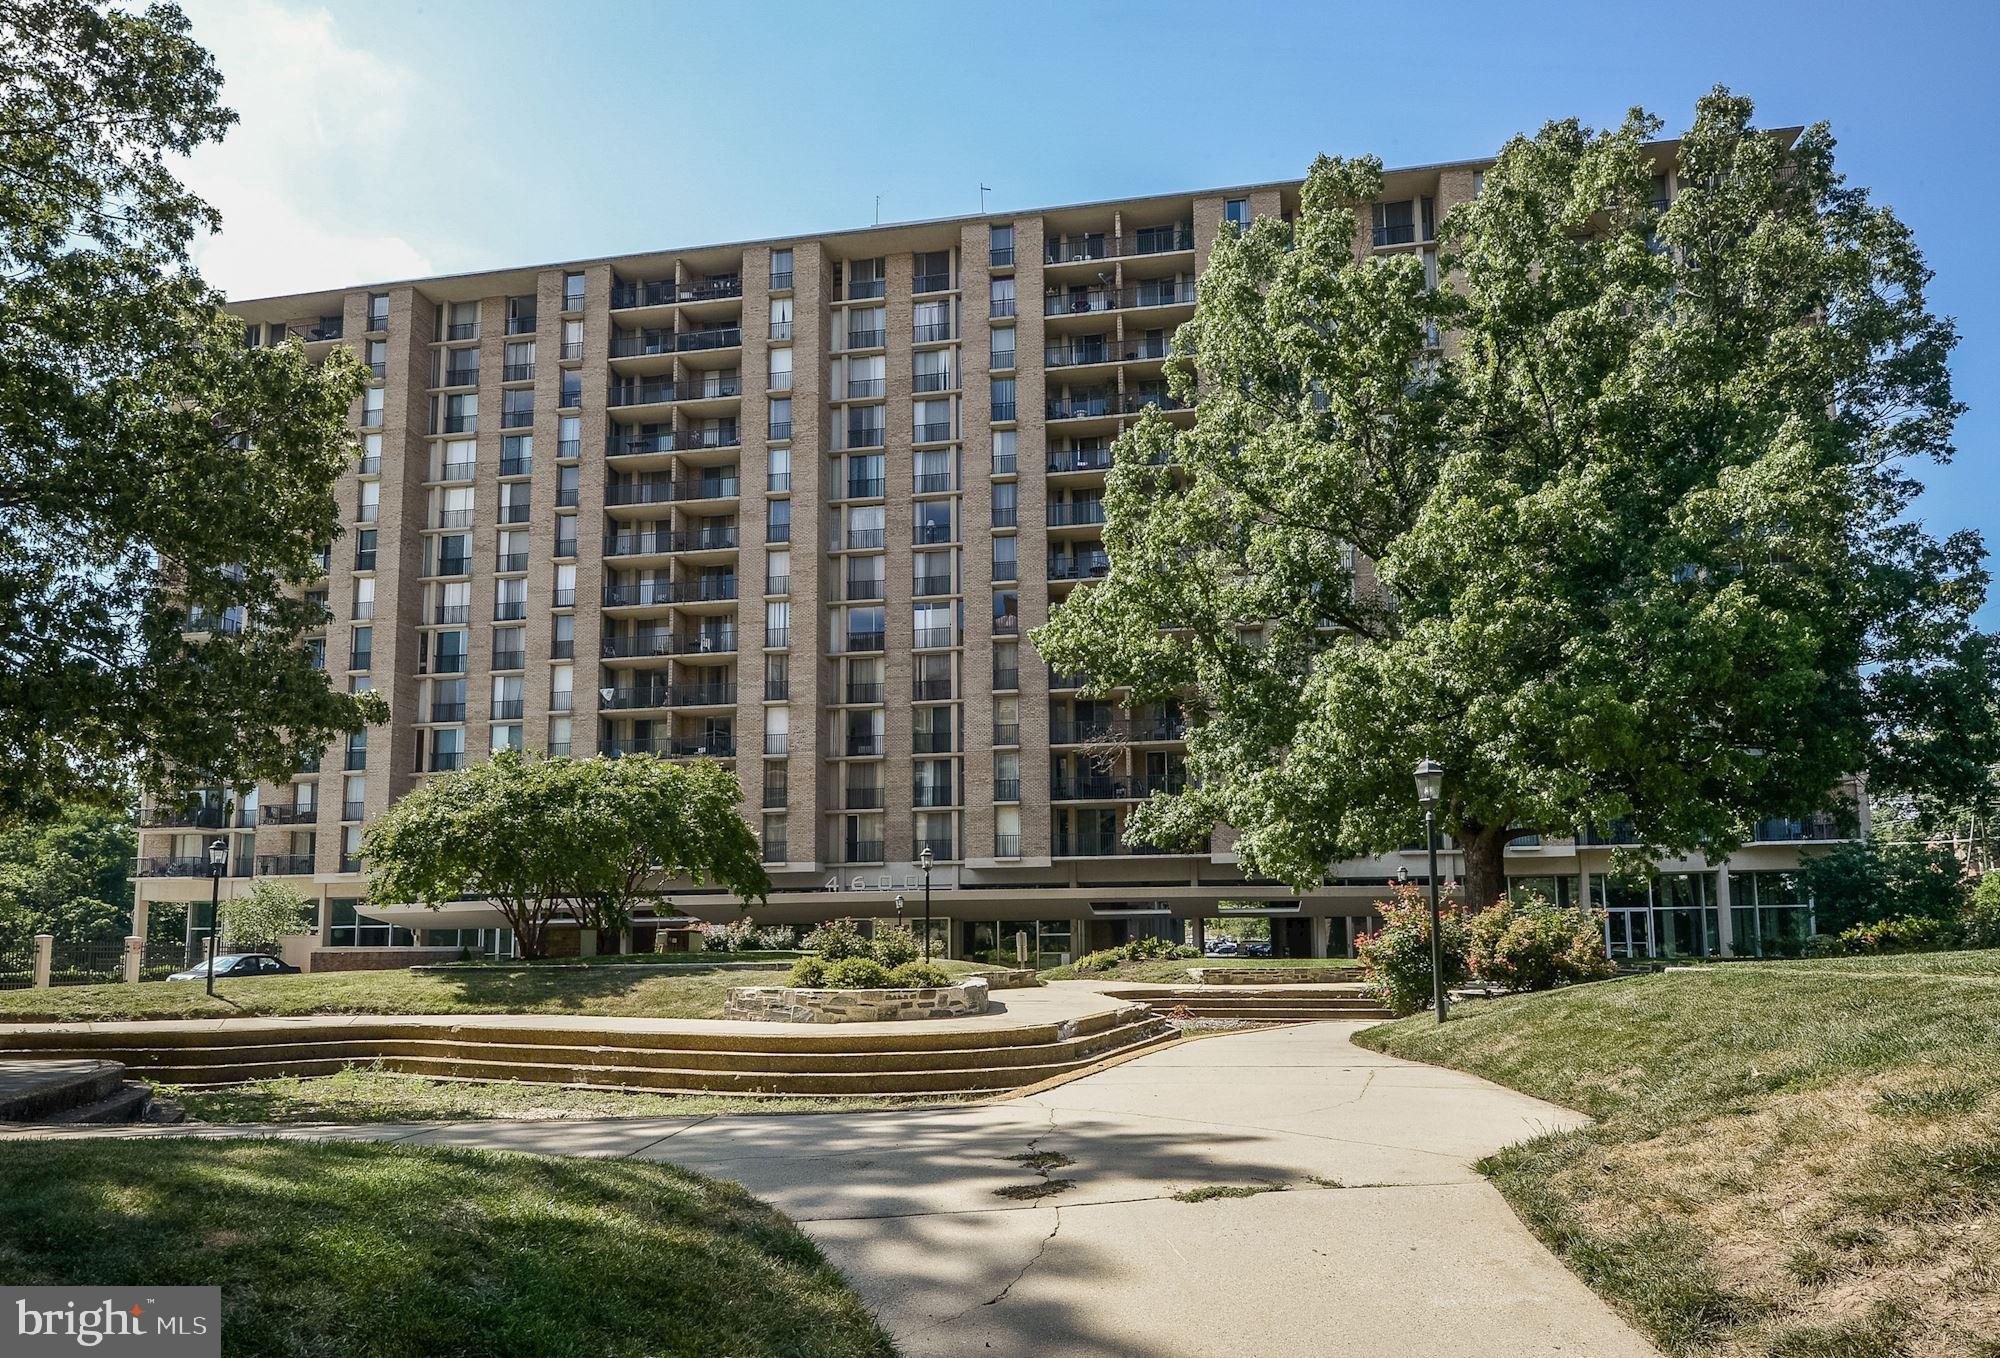 Rarely available, spacious 2bedroom/2baths condo at the Carlton with garage parking! New windows and sliding doors. Bright unit with balcony overlooking Four-Mile Run Park access to W&OD Bike Trail. Minutes to Pentagon and DC. Easy walk to Shirlington Village. All utilities included in condo fees. New lobby, hallways to be in updated in spring. 24 hour concierge, fabulous pool, fitness center, convenience store in building.